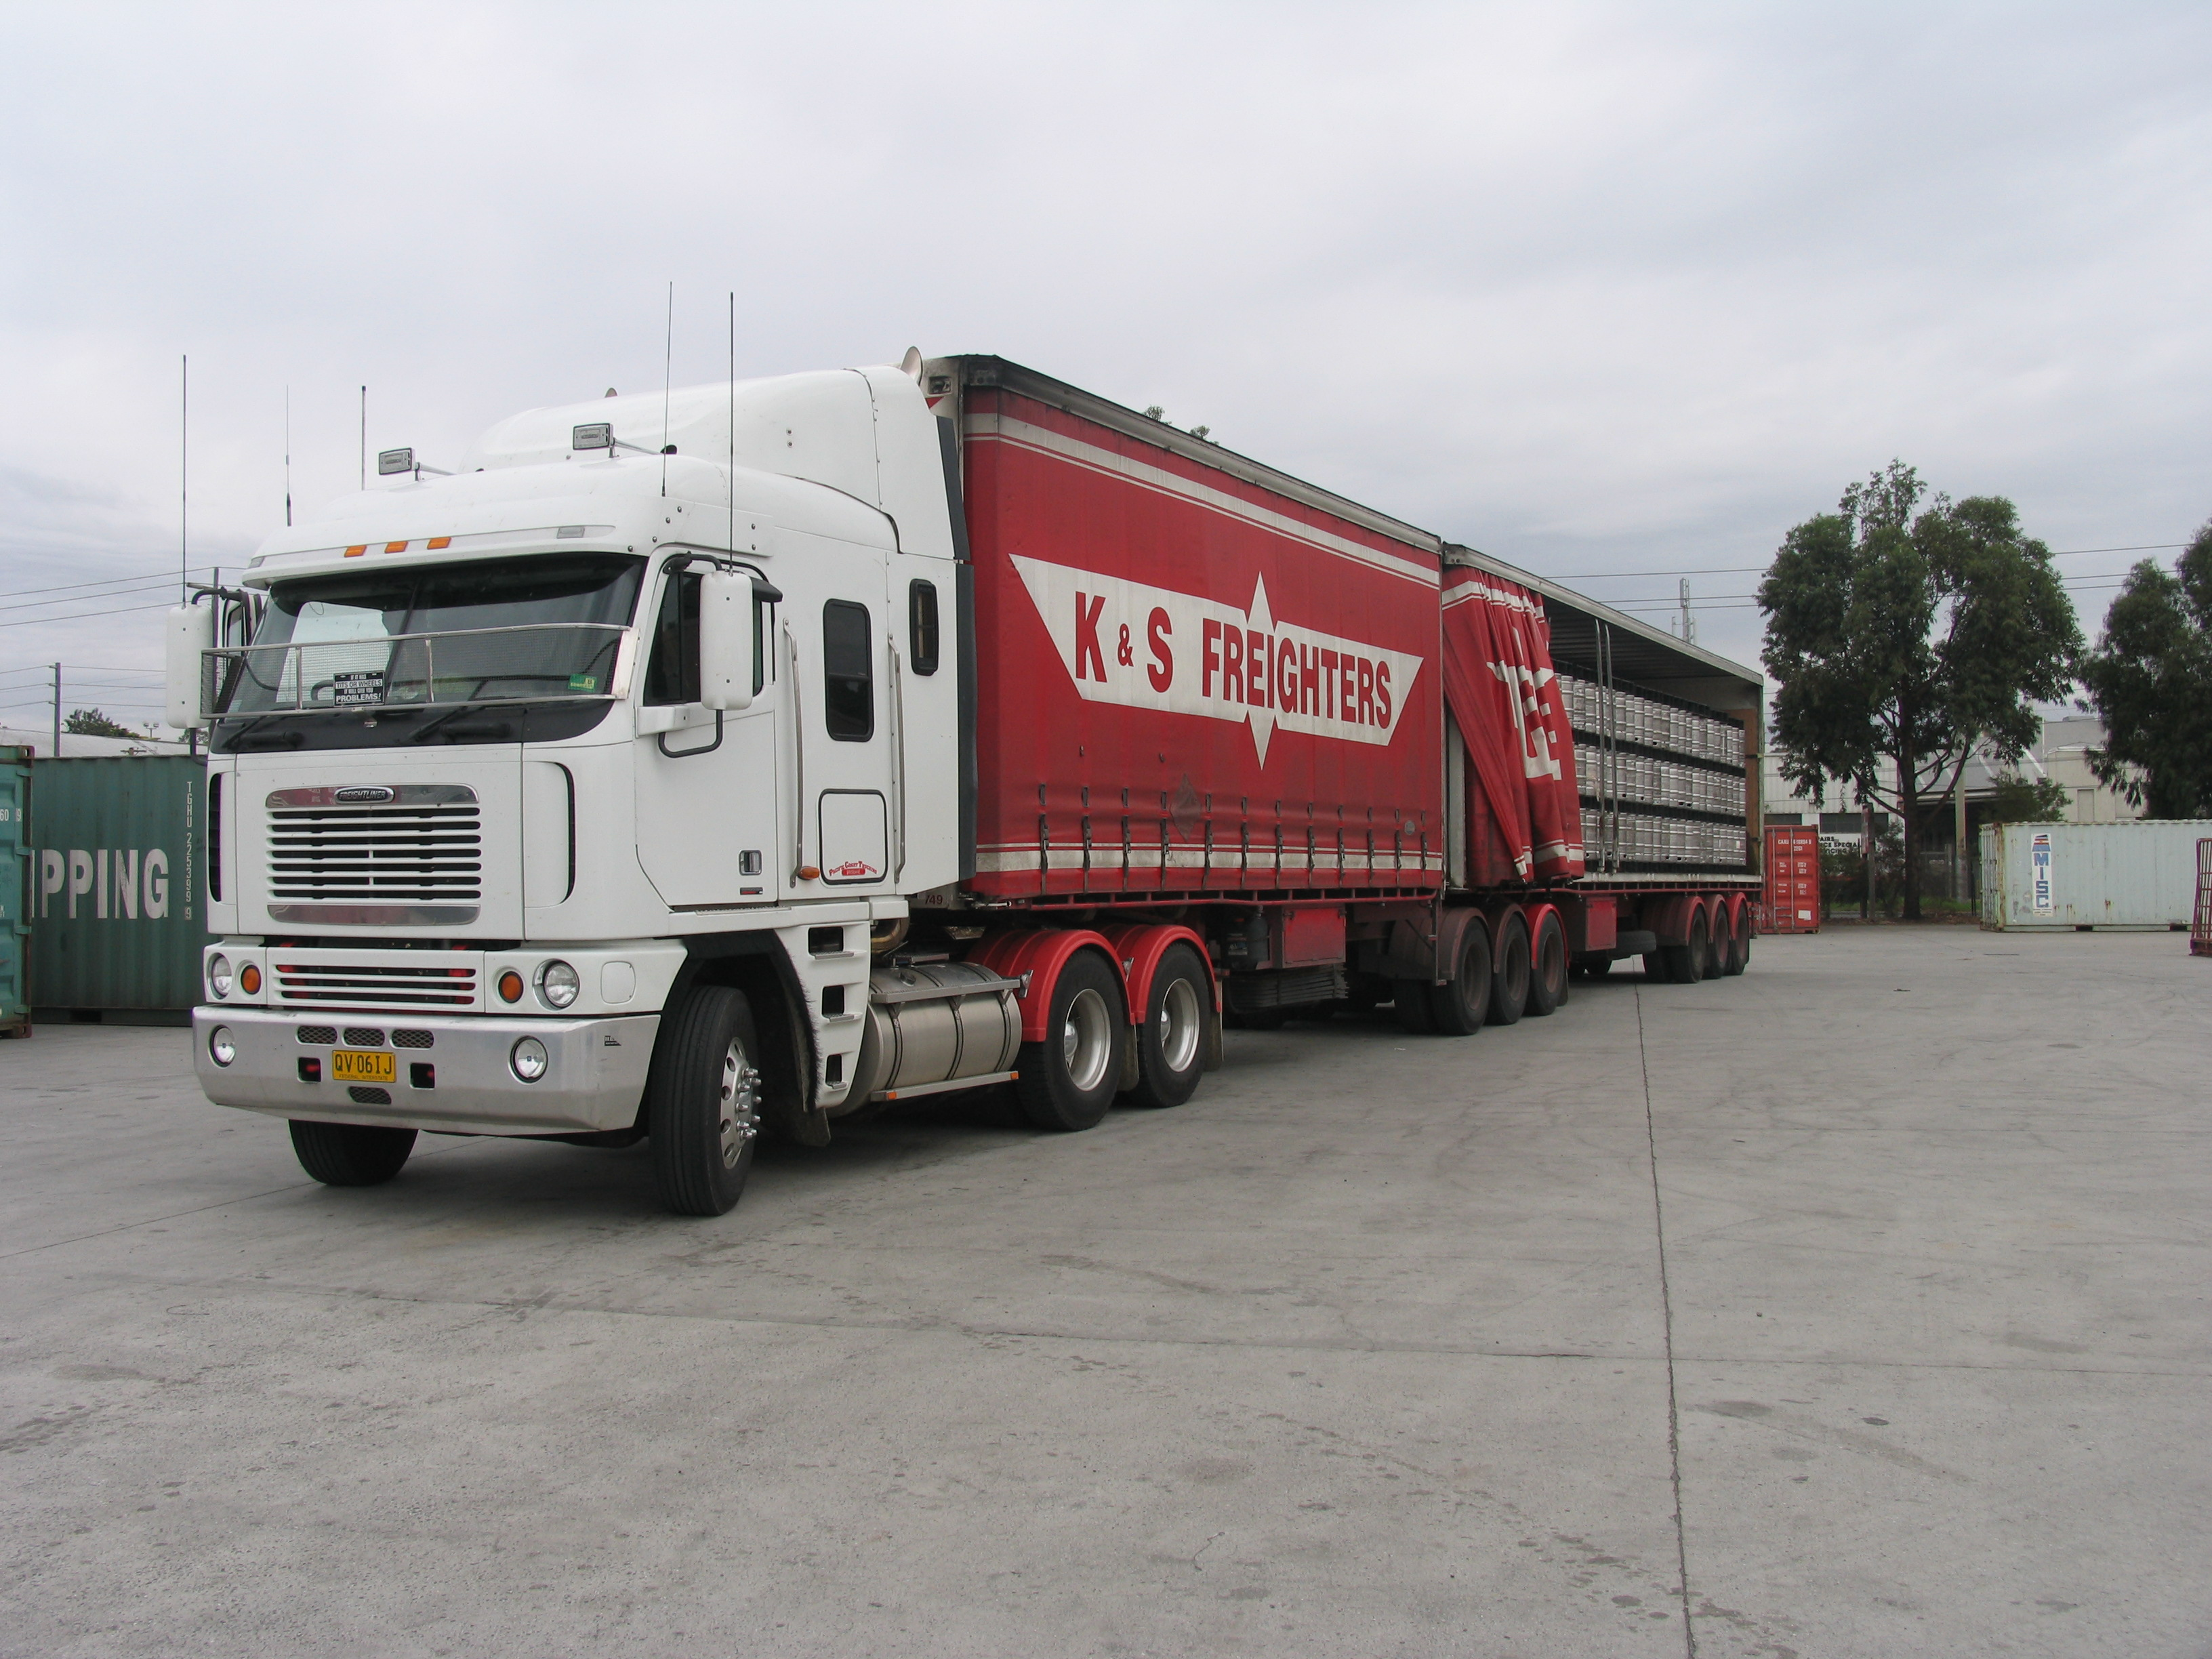 Httpsownerdriverindustry news1312truck and dogs 8079g fandeluxe Gallery